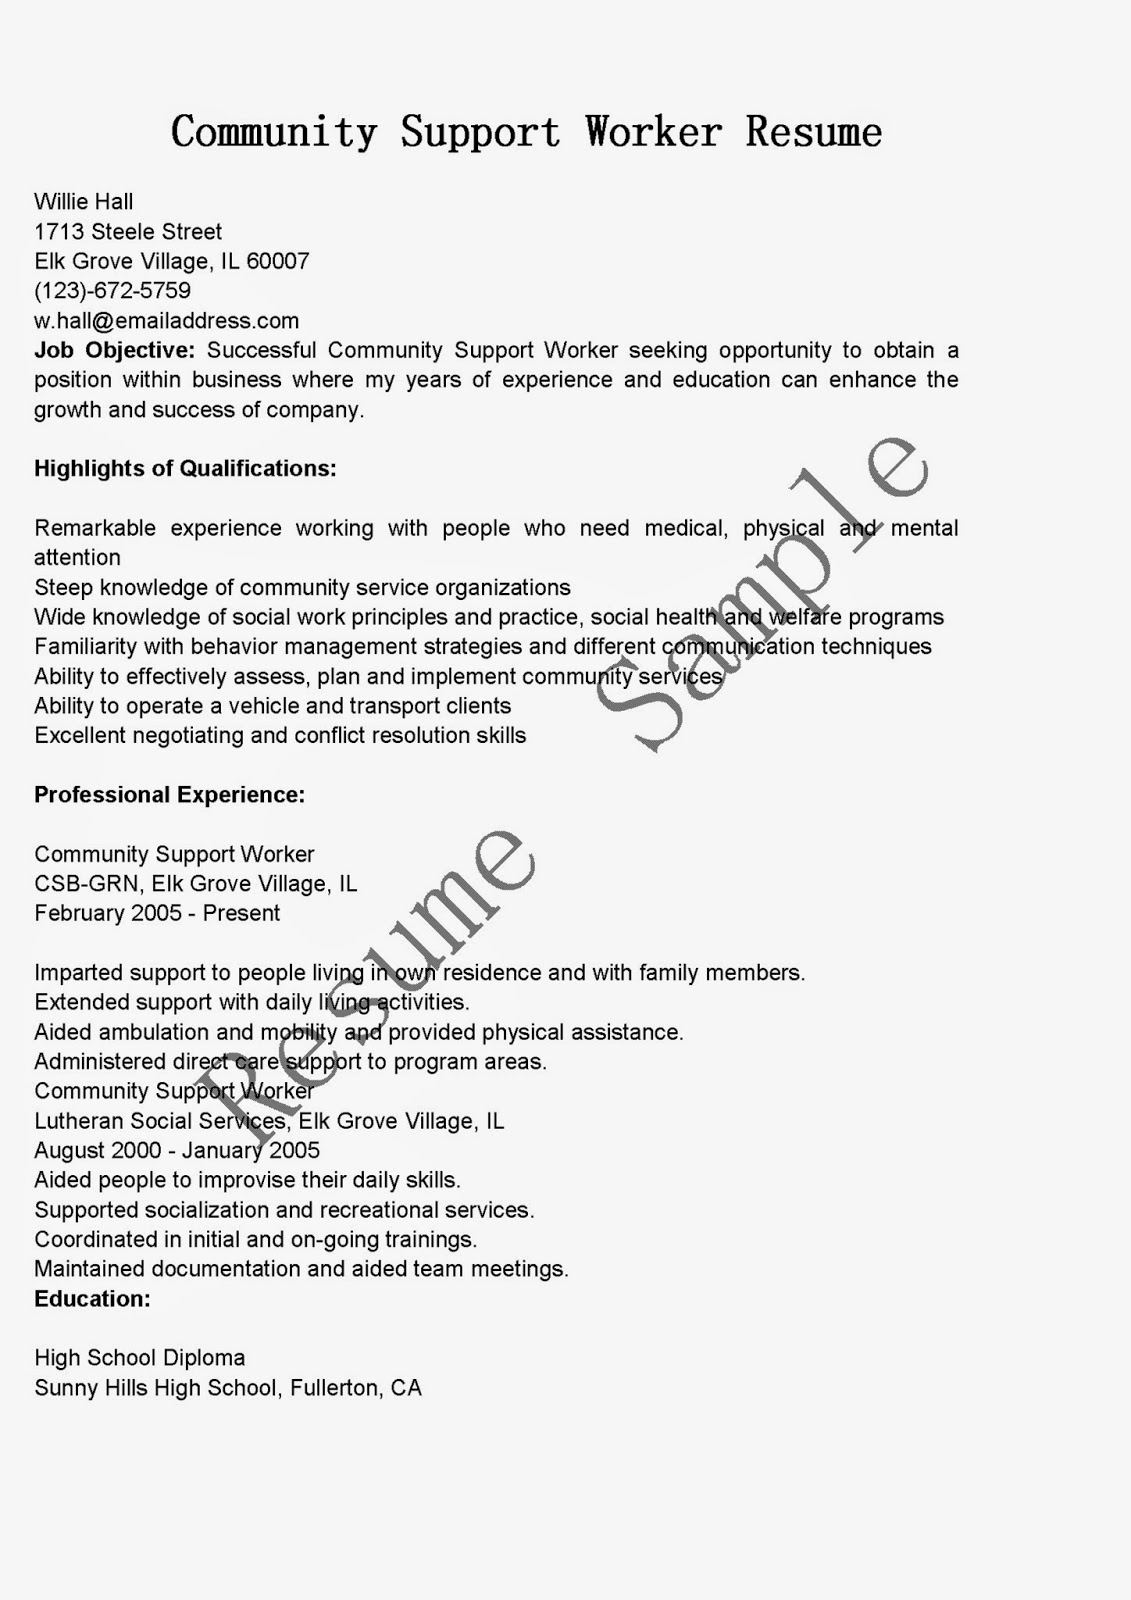 resume samples  community support worker resume sample